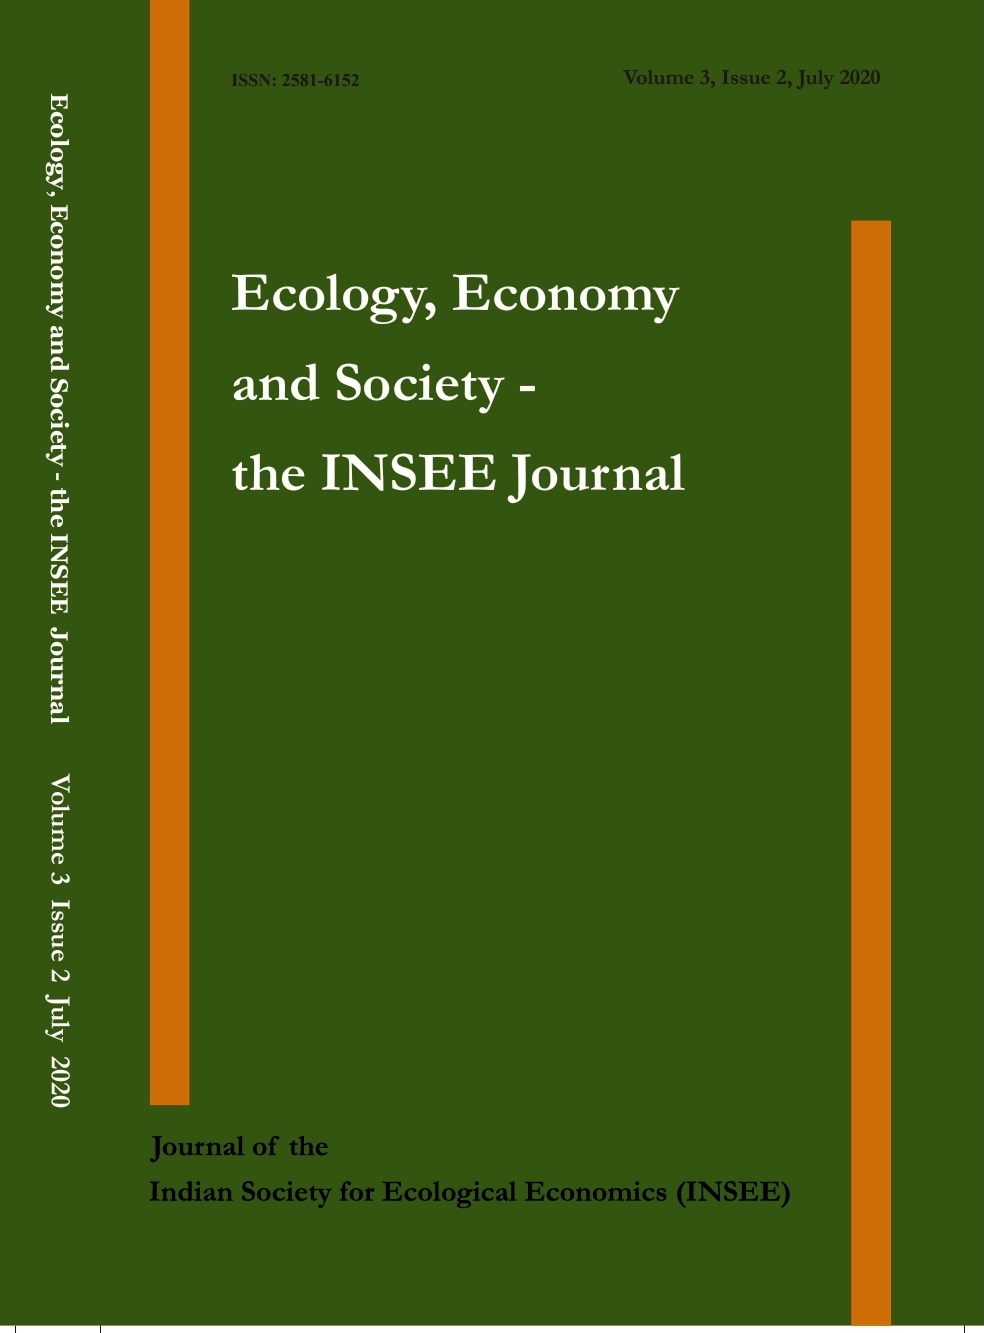 View Vol. 3 No. 2 (2020): Ecology, Economy and Society- the INSEE Journal